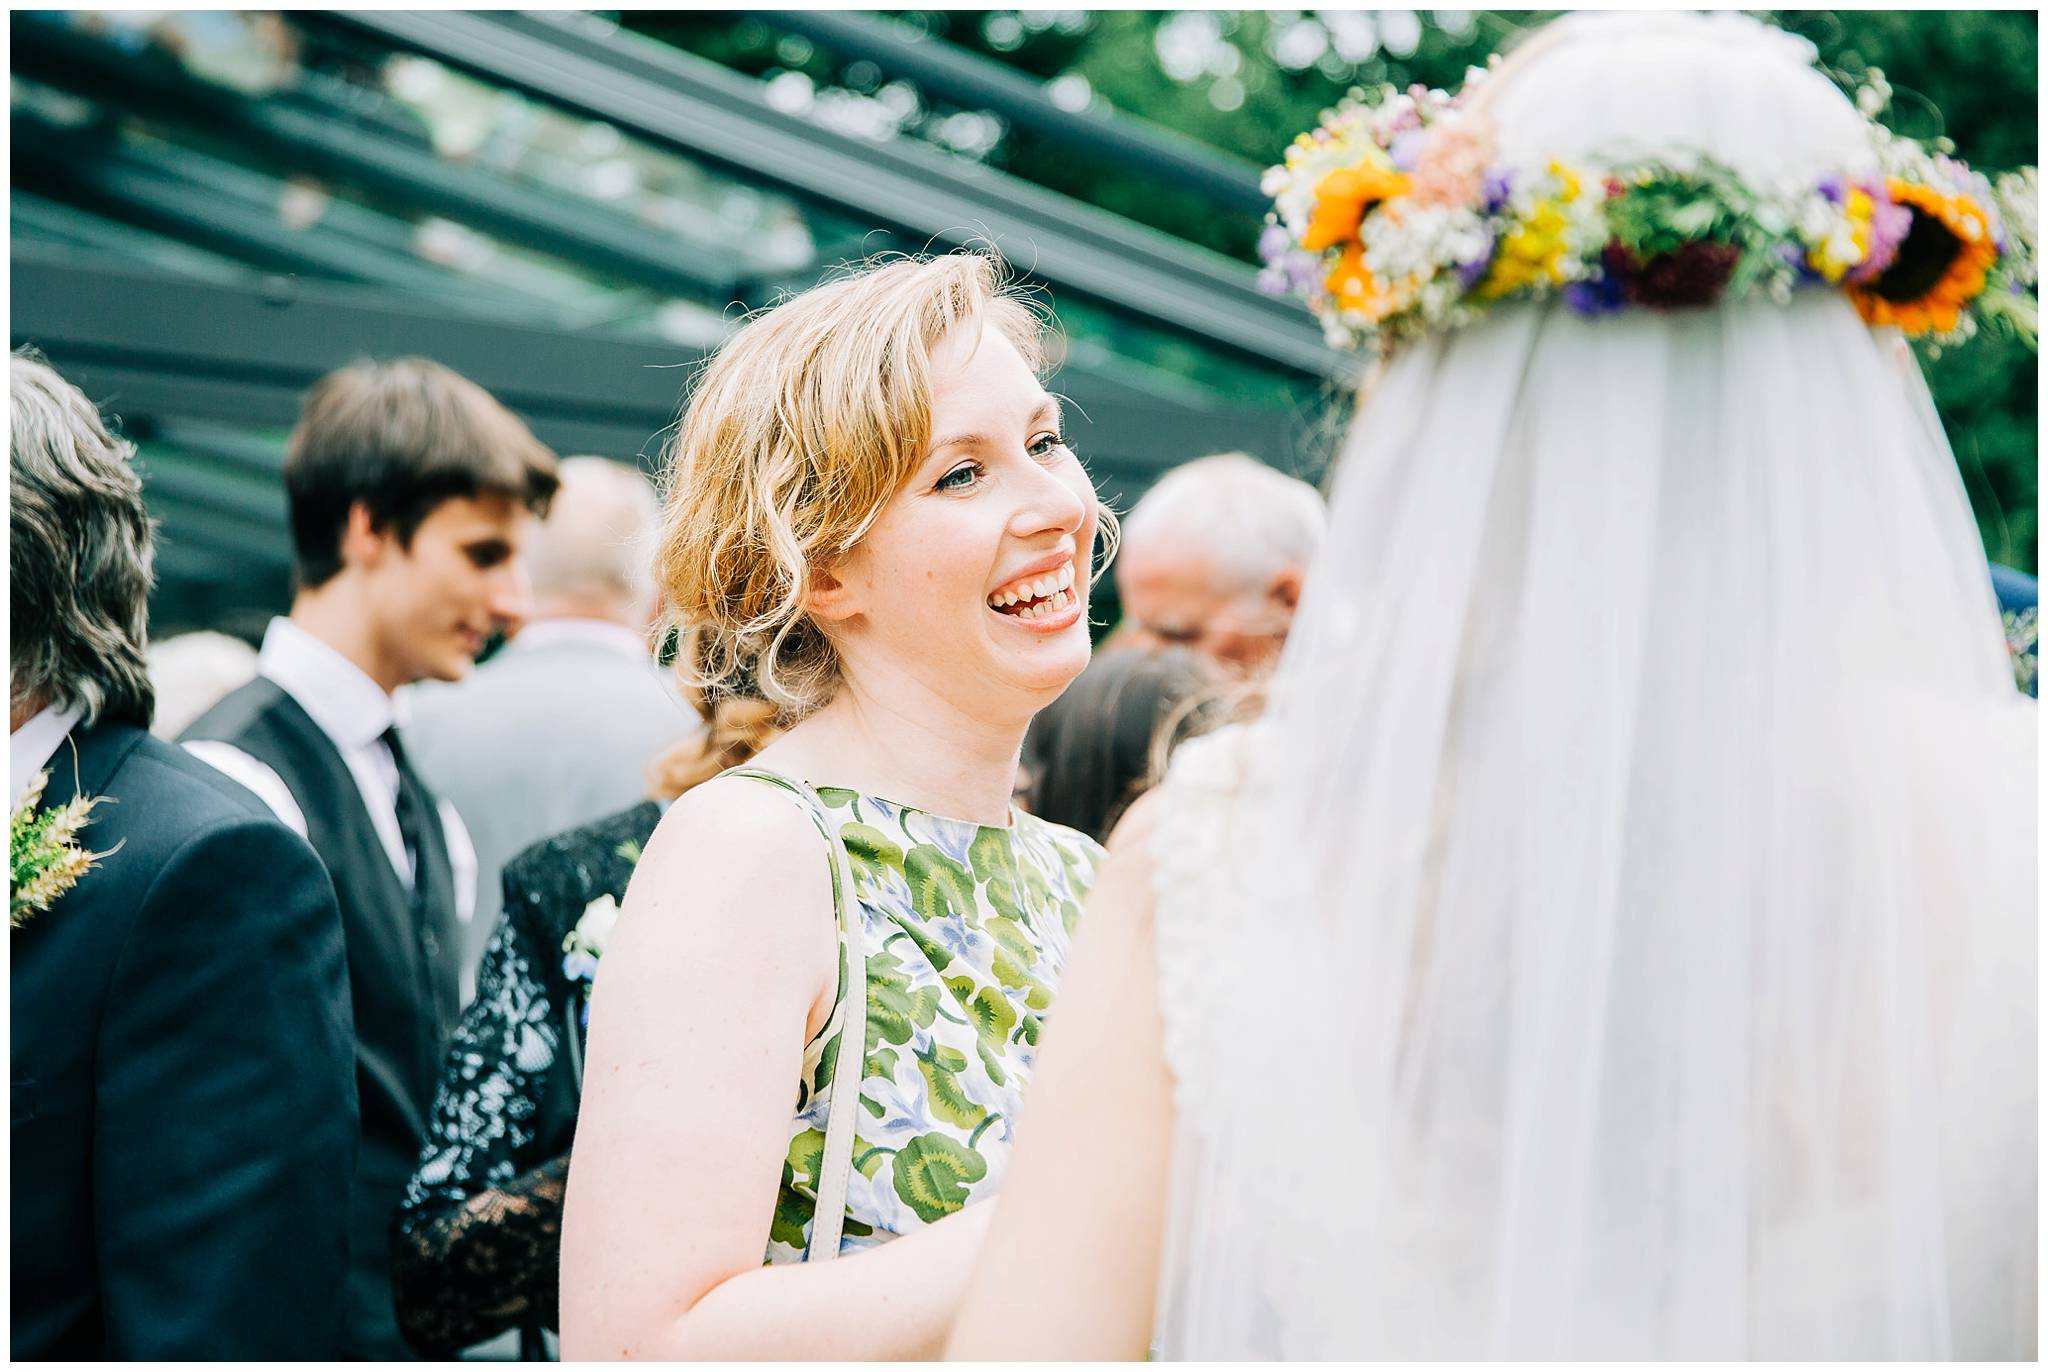 guest smiling happily with bride